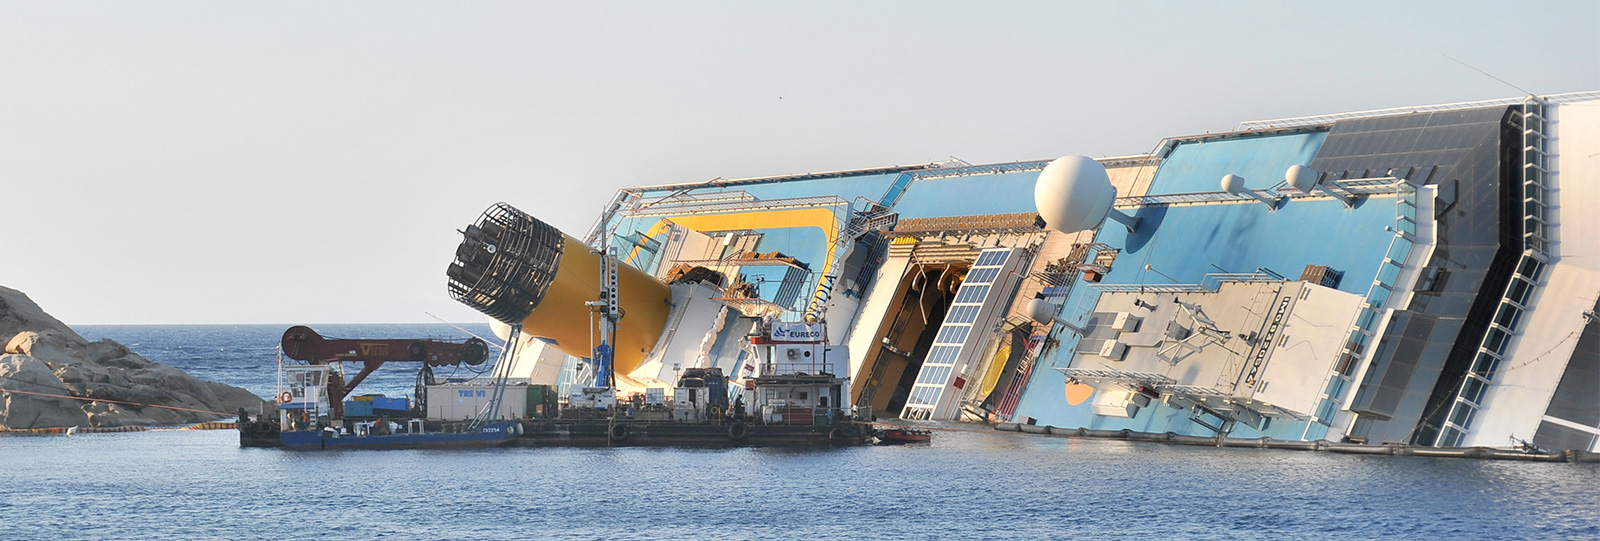 COSTA CONCORDIA WRECK PARBUCKLING AND REMOVAL Trevi spa